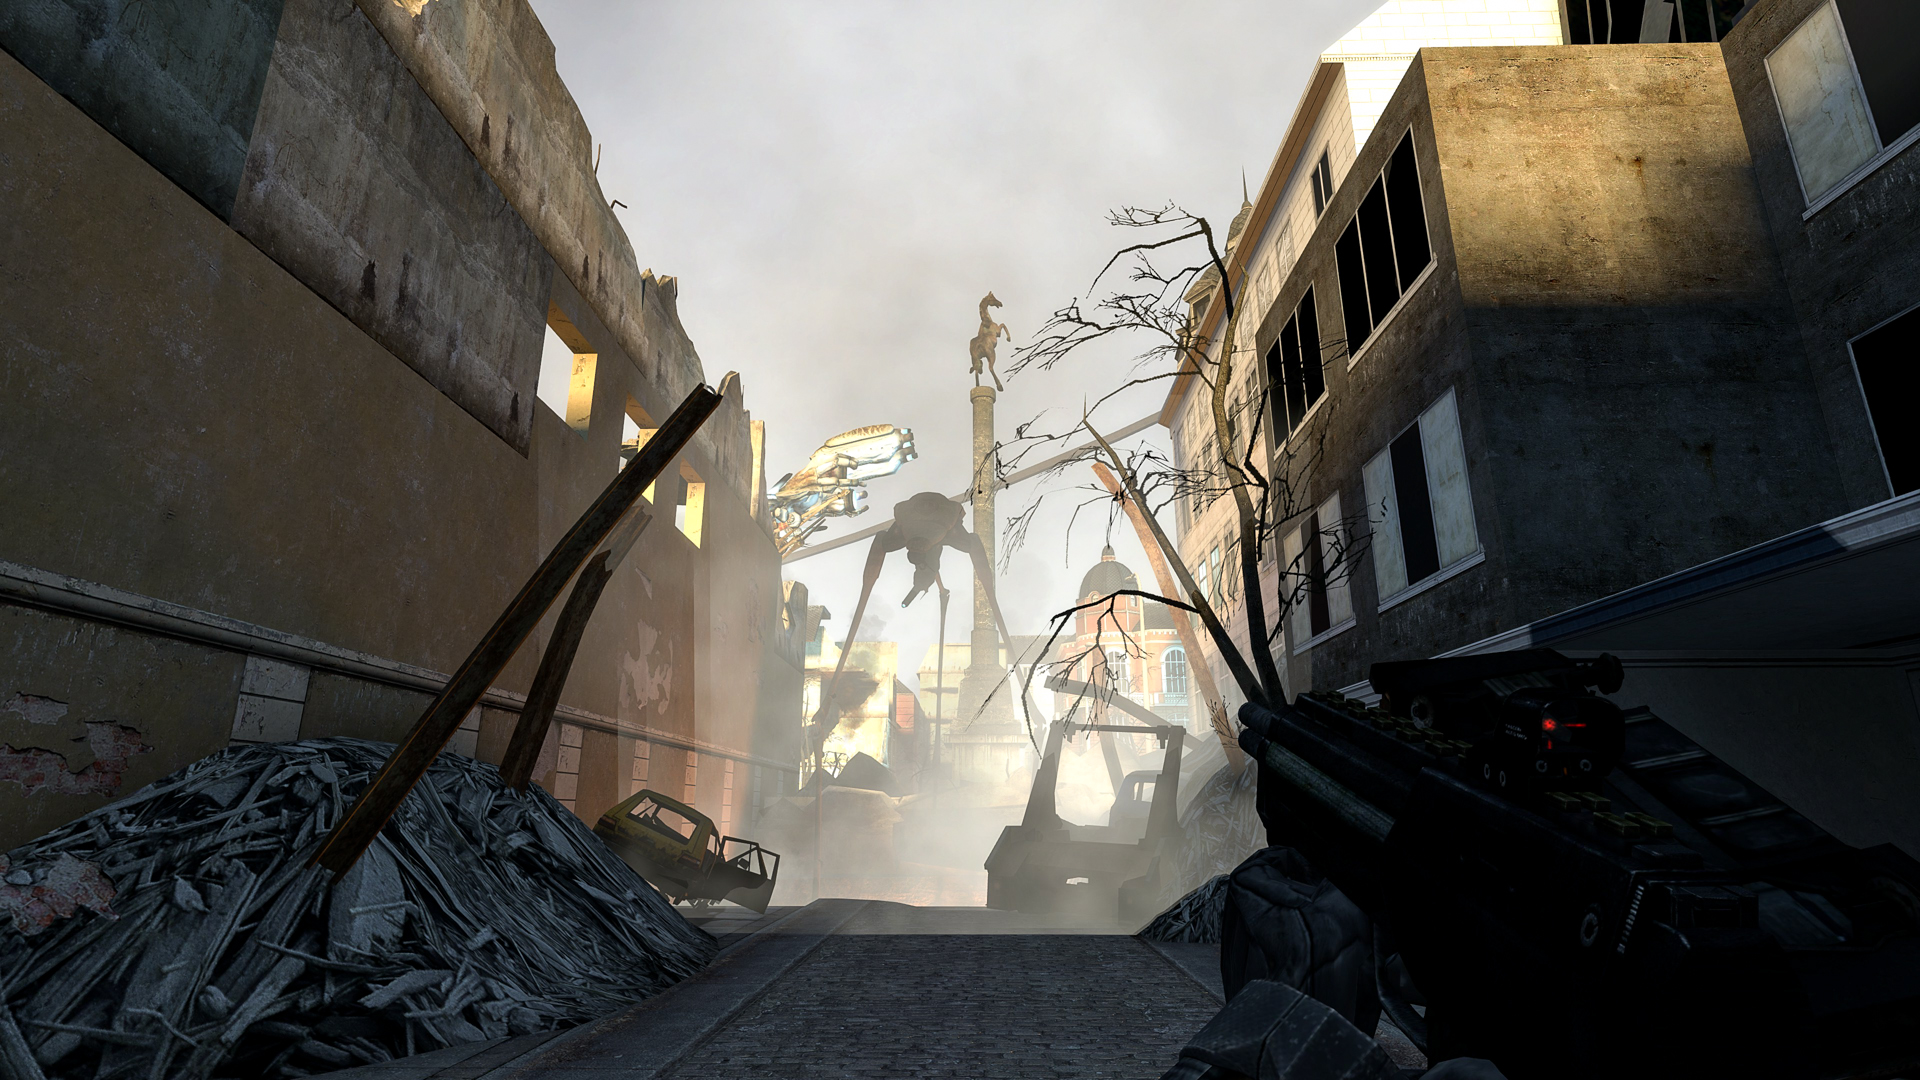 Half-Life 2: Update Is Now Available on Linux - Video and